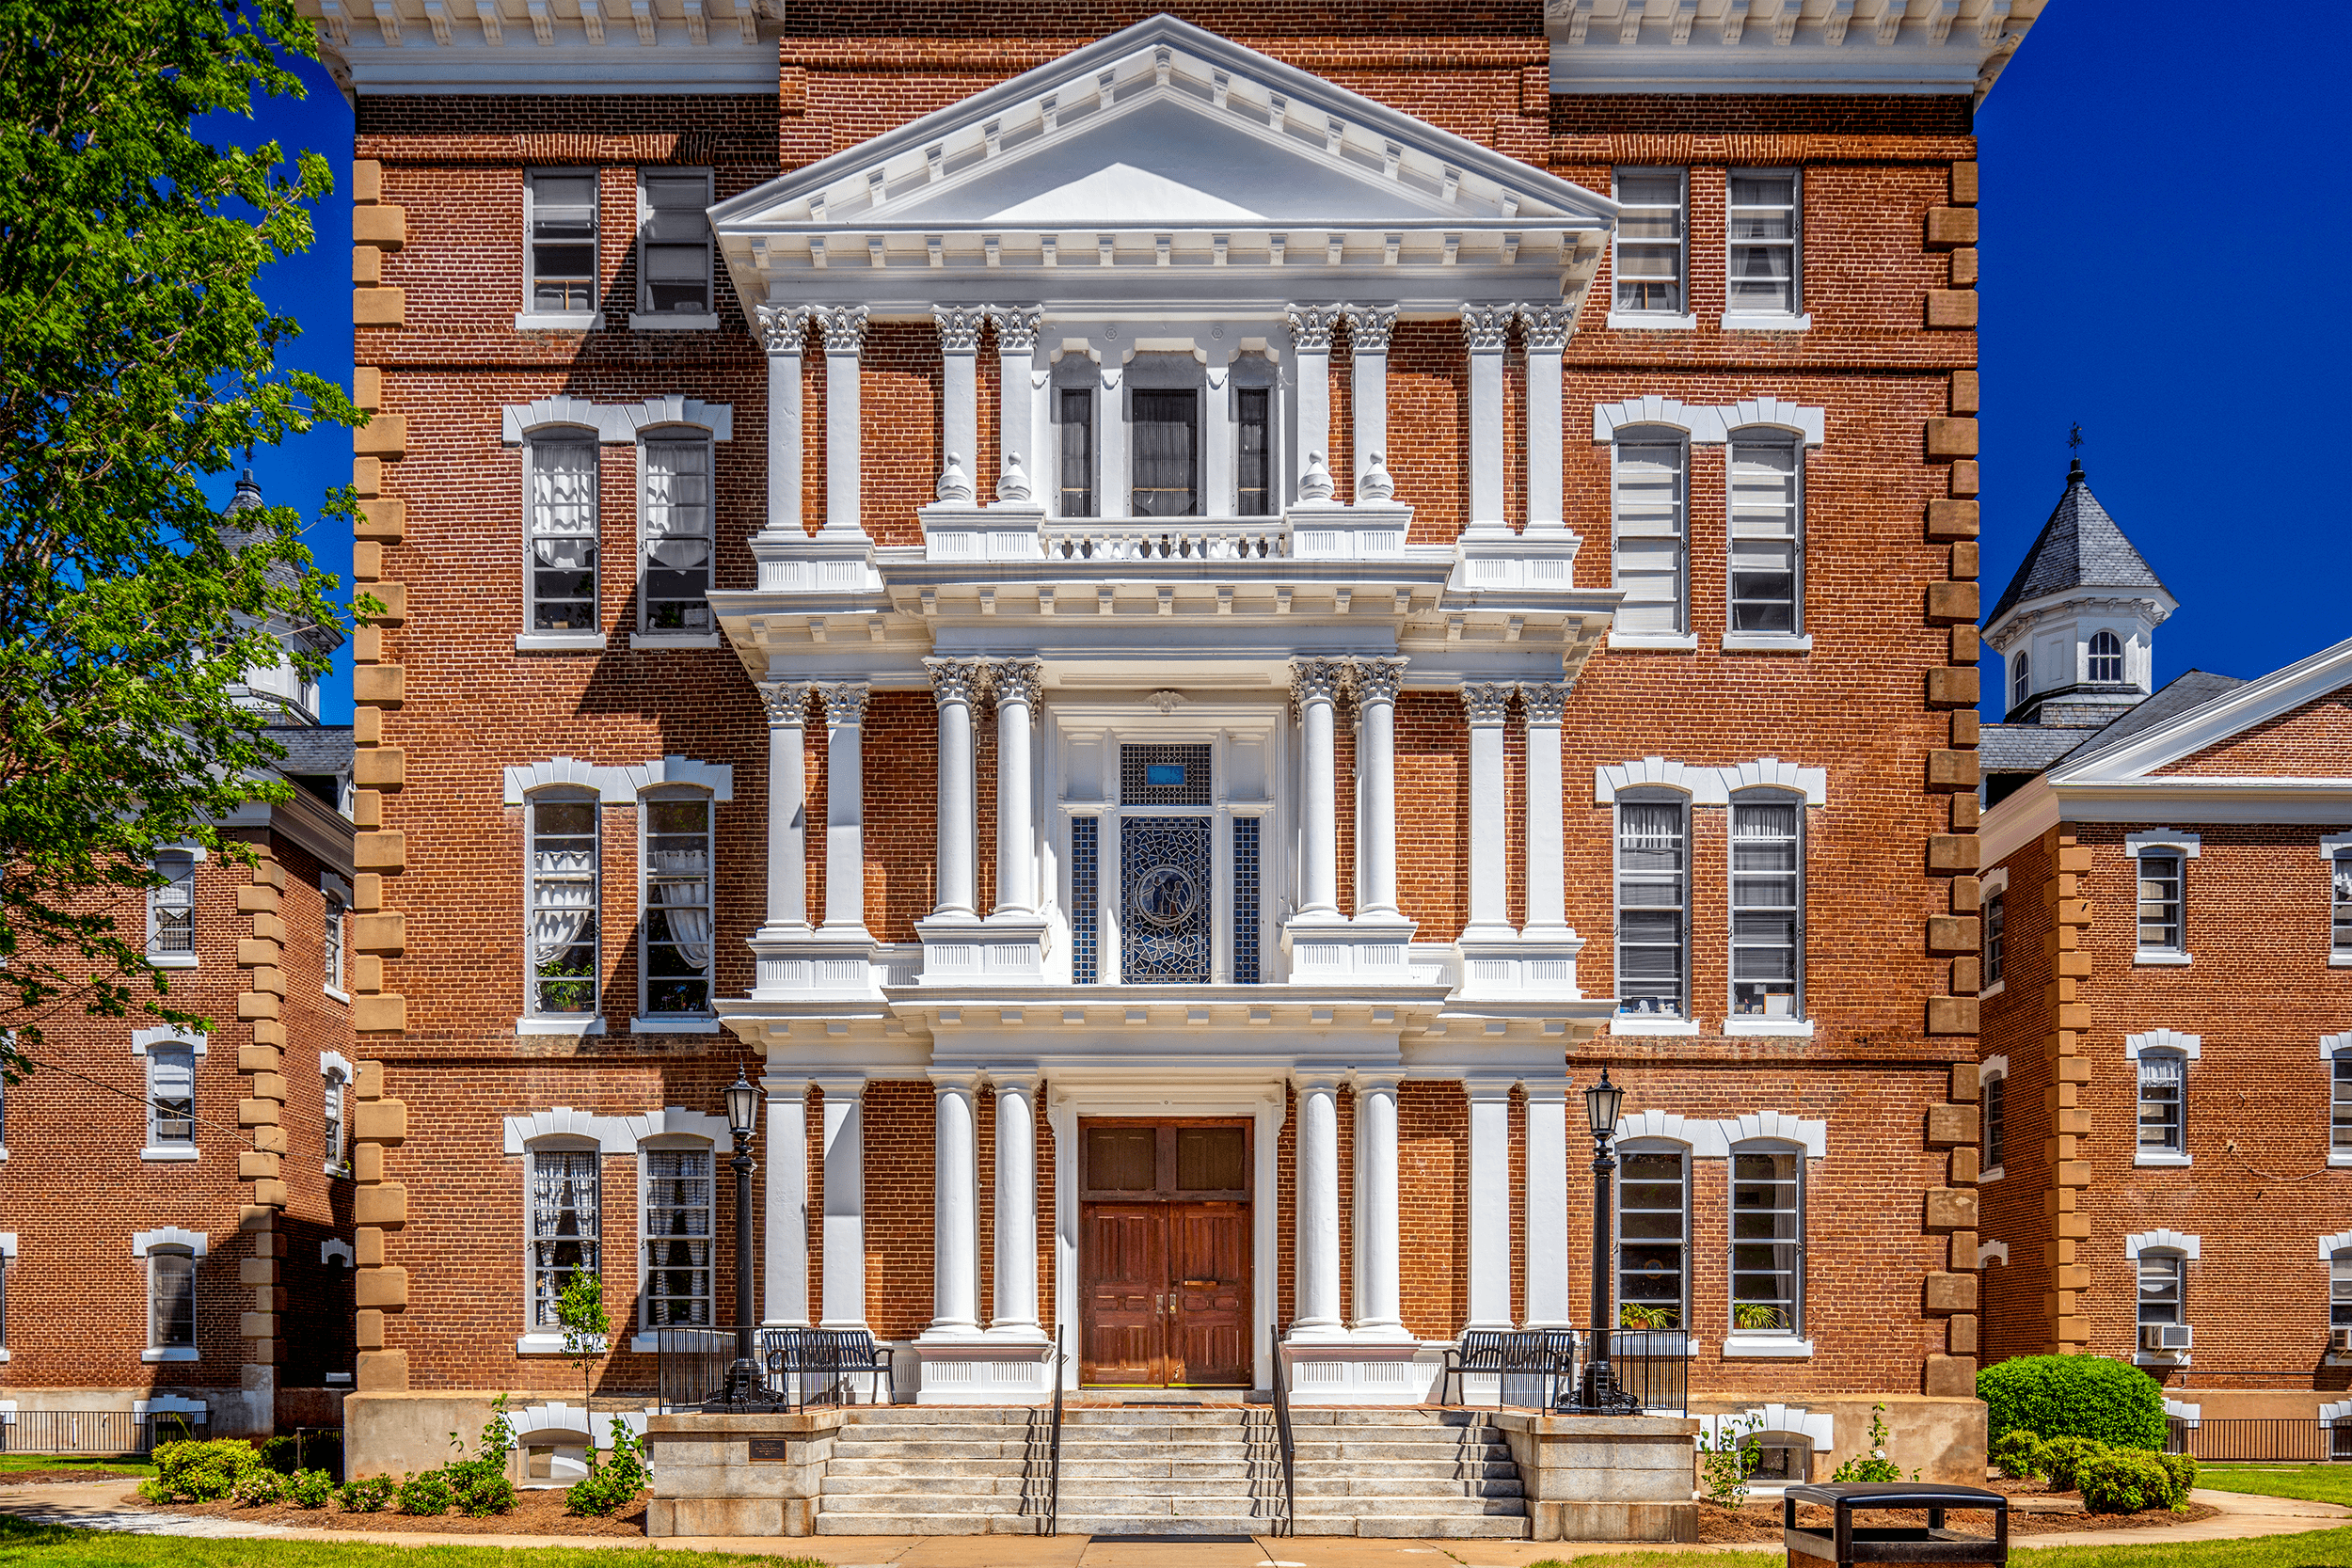 Acclaimed Philadelphia architect Samuel Sloan (1815-1884), who was known for his hospital and public building designs, developed the plans for the Broughton Hospital complex in 1875. The large, three-story portico has paired Roman Doric columns on pedestals, flanking the entrance. The second level of the portico has Corinthian columns, while the third level uses paired urns instead of columns.